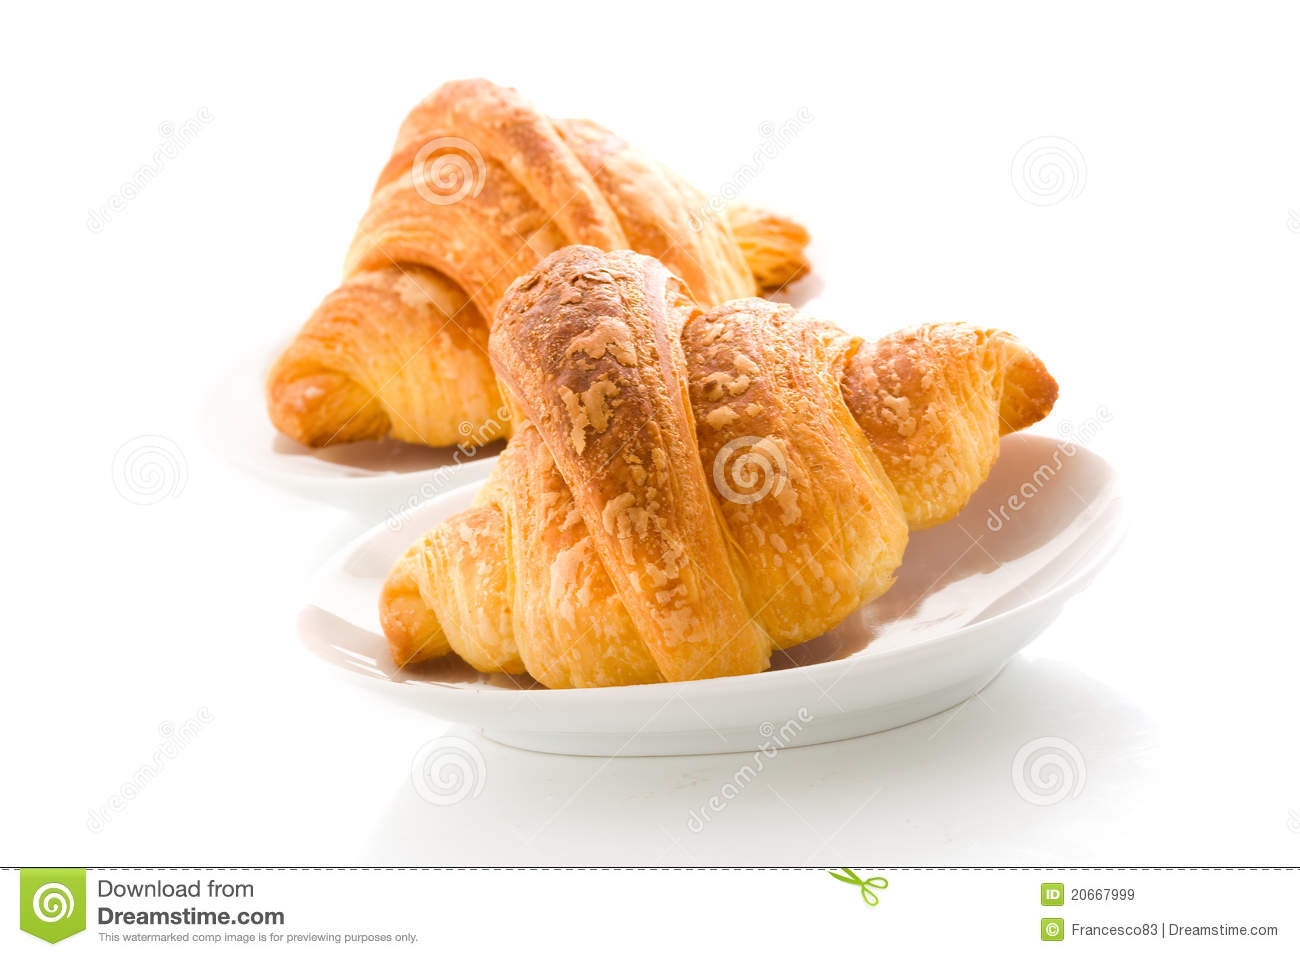 Photo of delicious tasty golden croissants on white background.